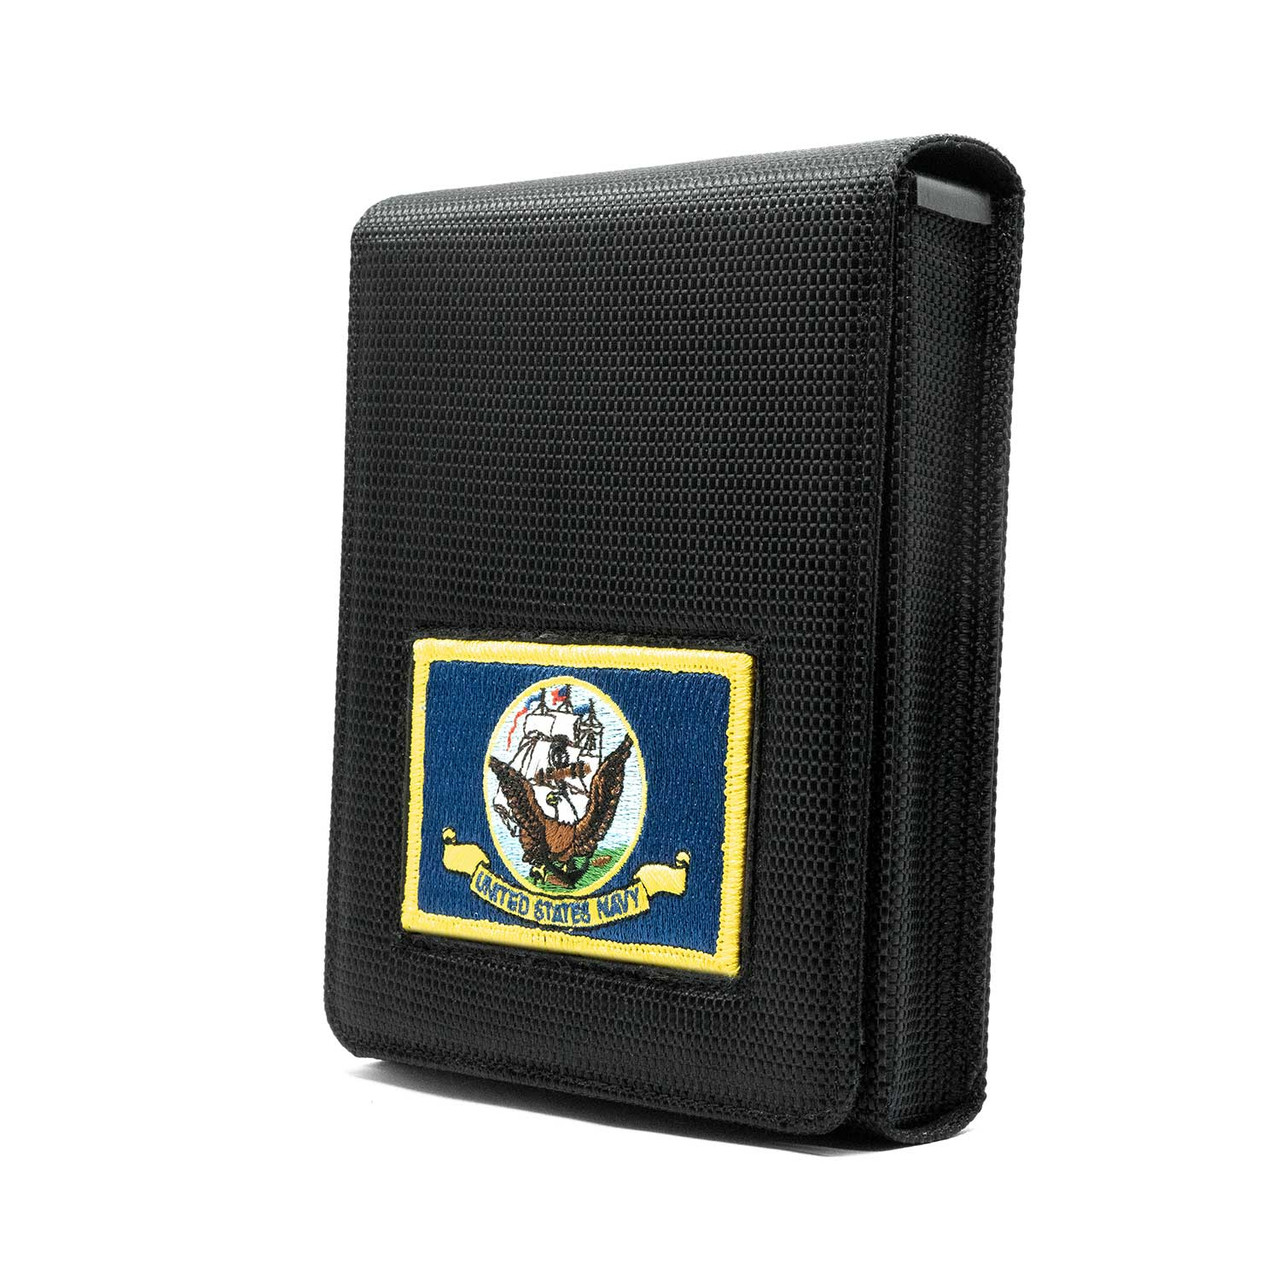 Walther PPQ Sub-Compact Navy Tactical Patch Holster